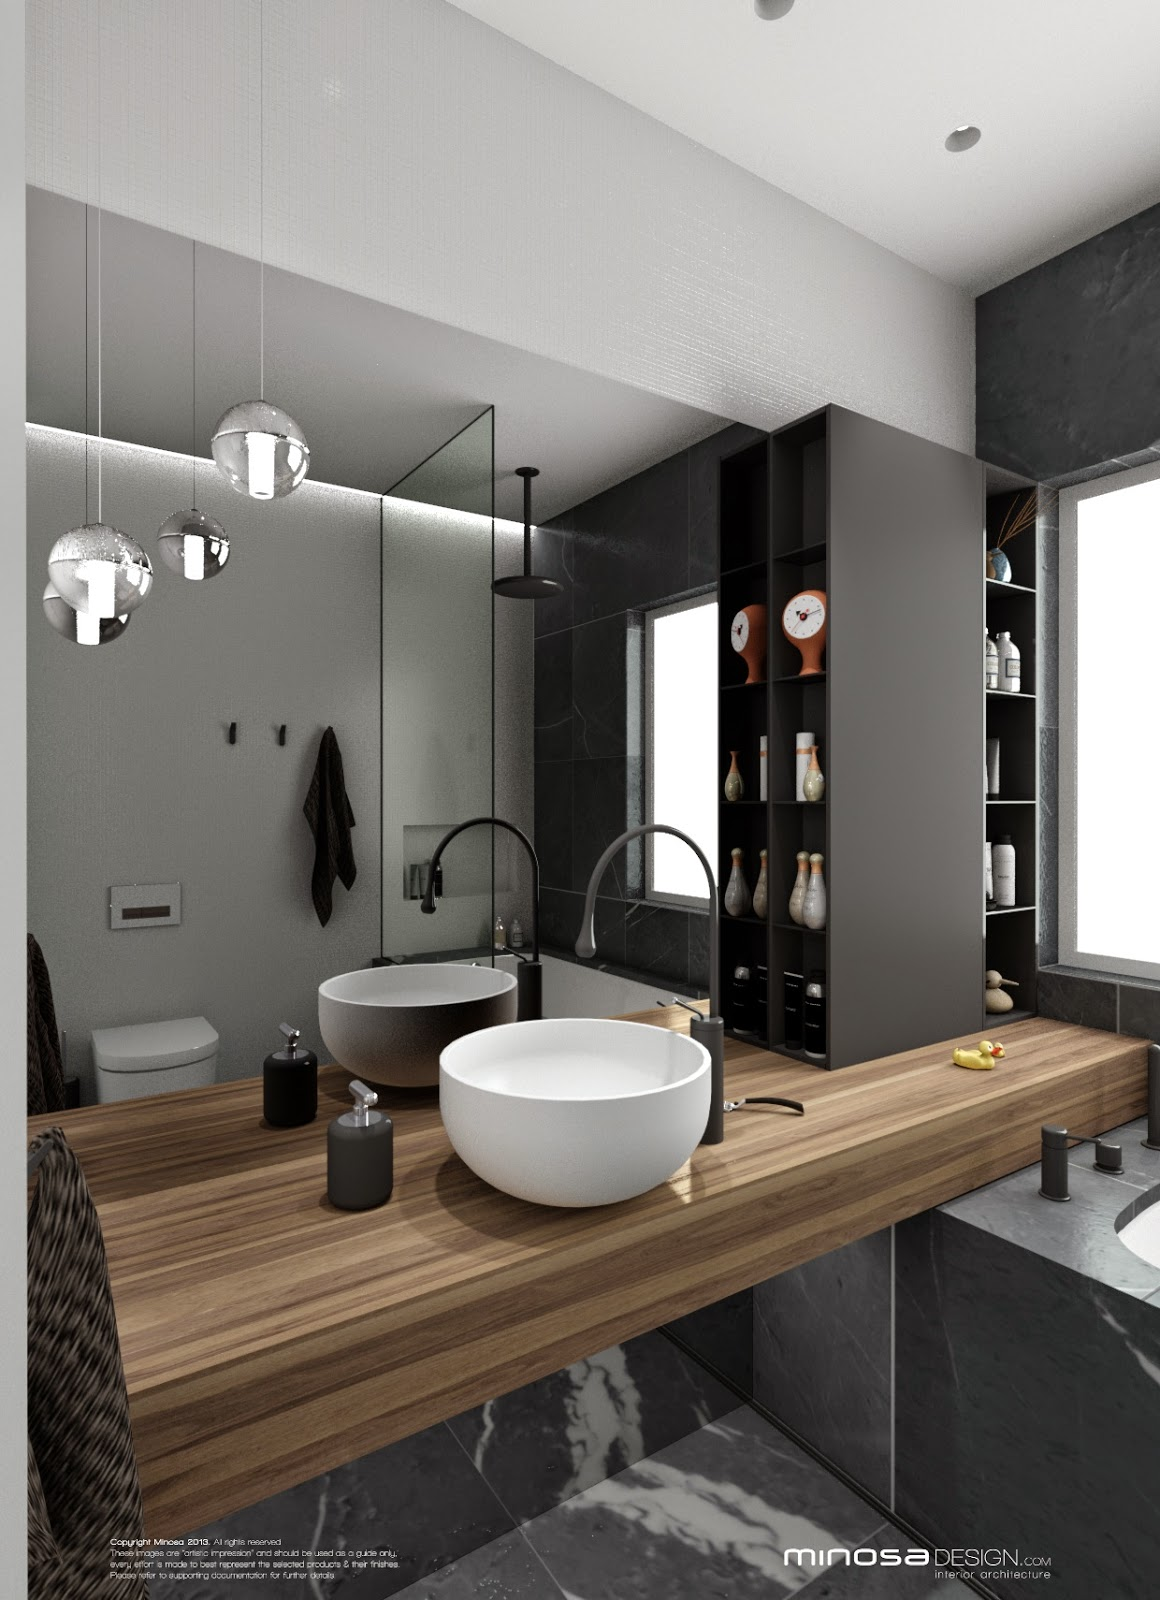 Minosa bathroom design small space feels large - Bathroom small design ...